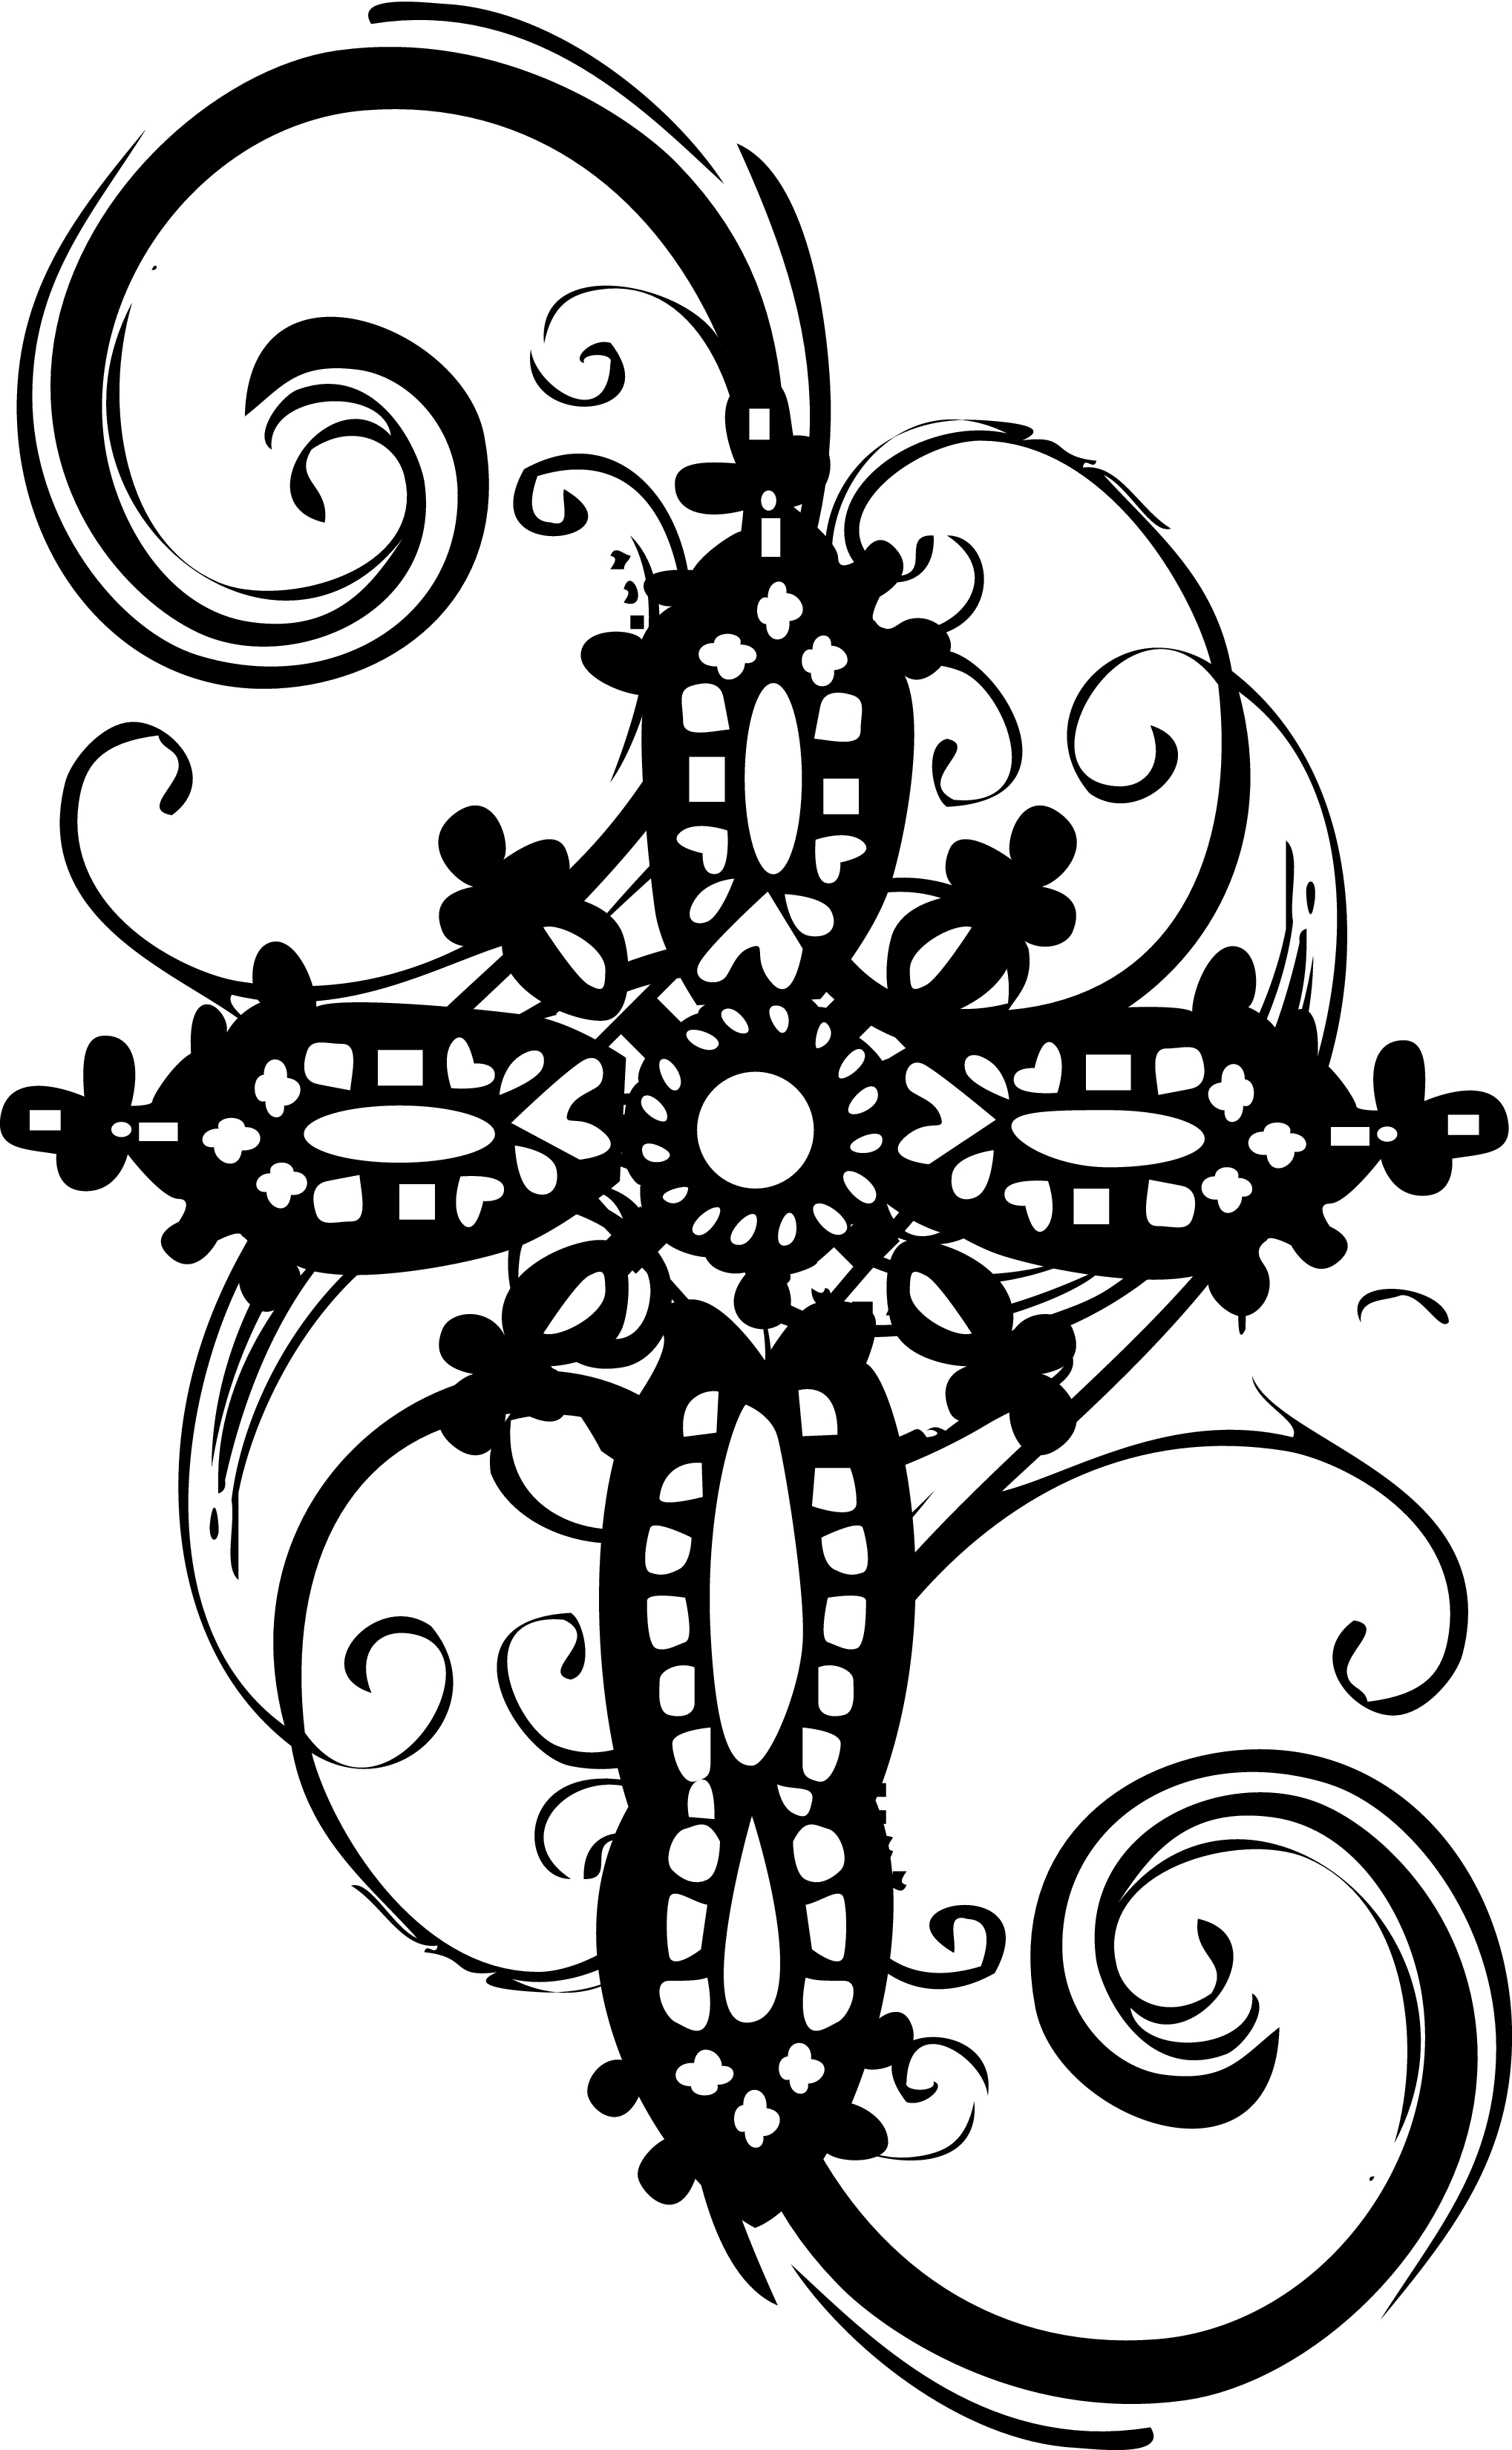 Christian Clipart For Offering Plate